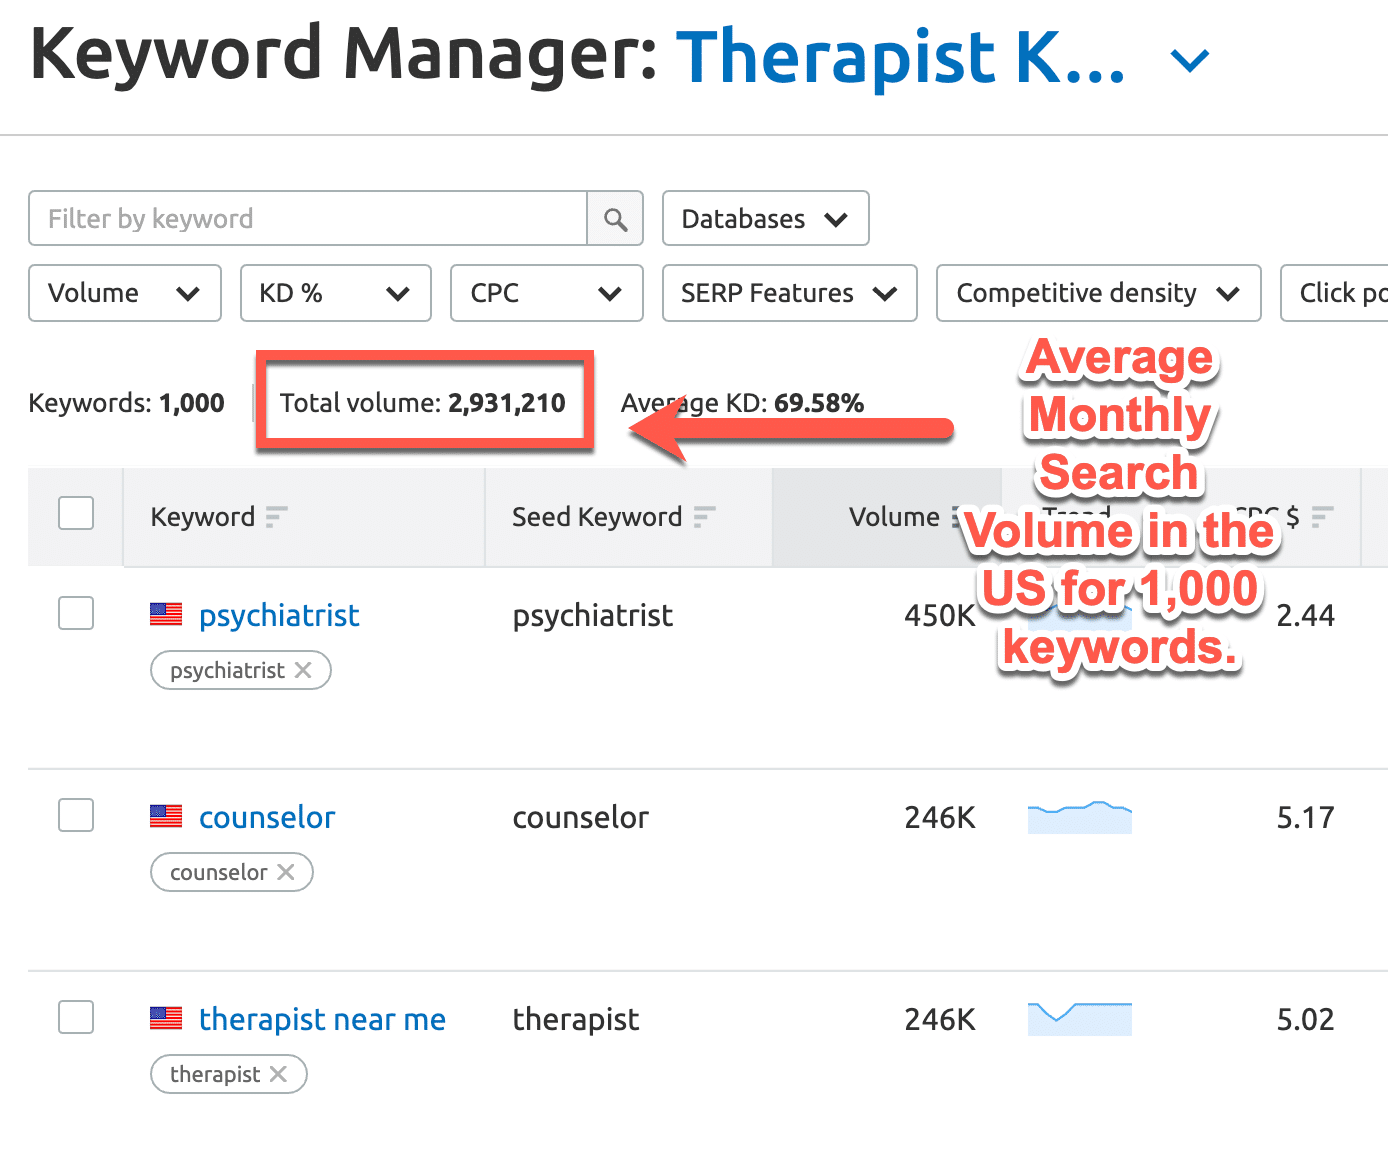 therapist and counselor keywords